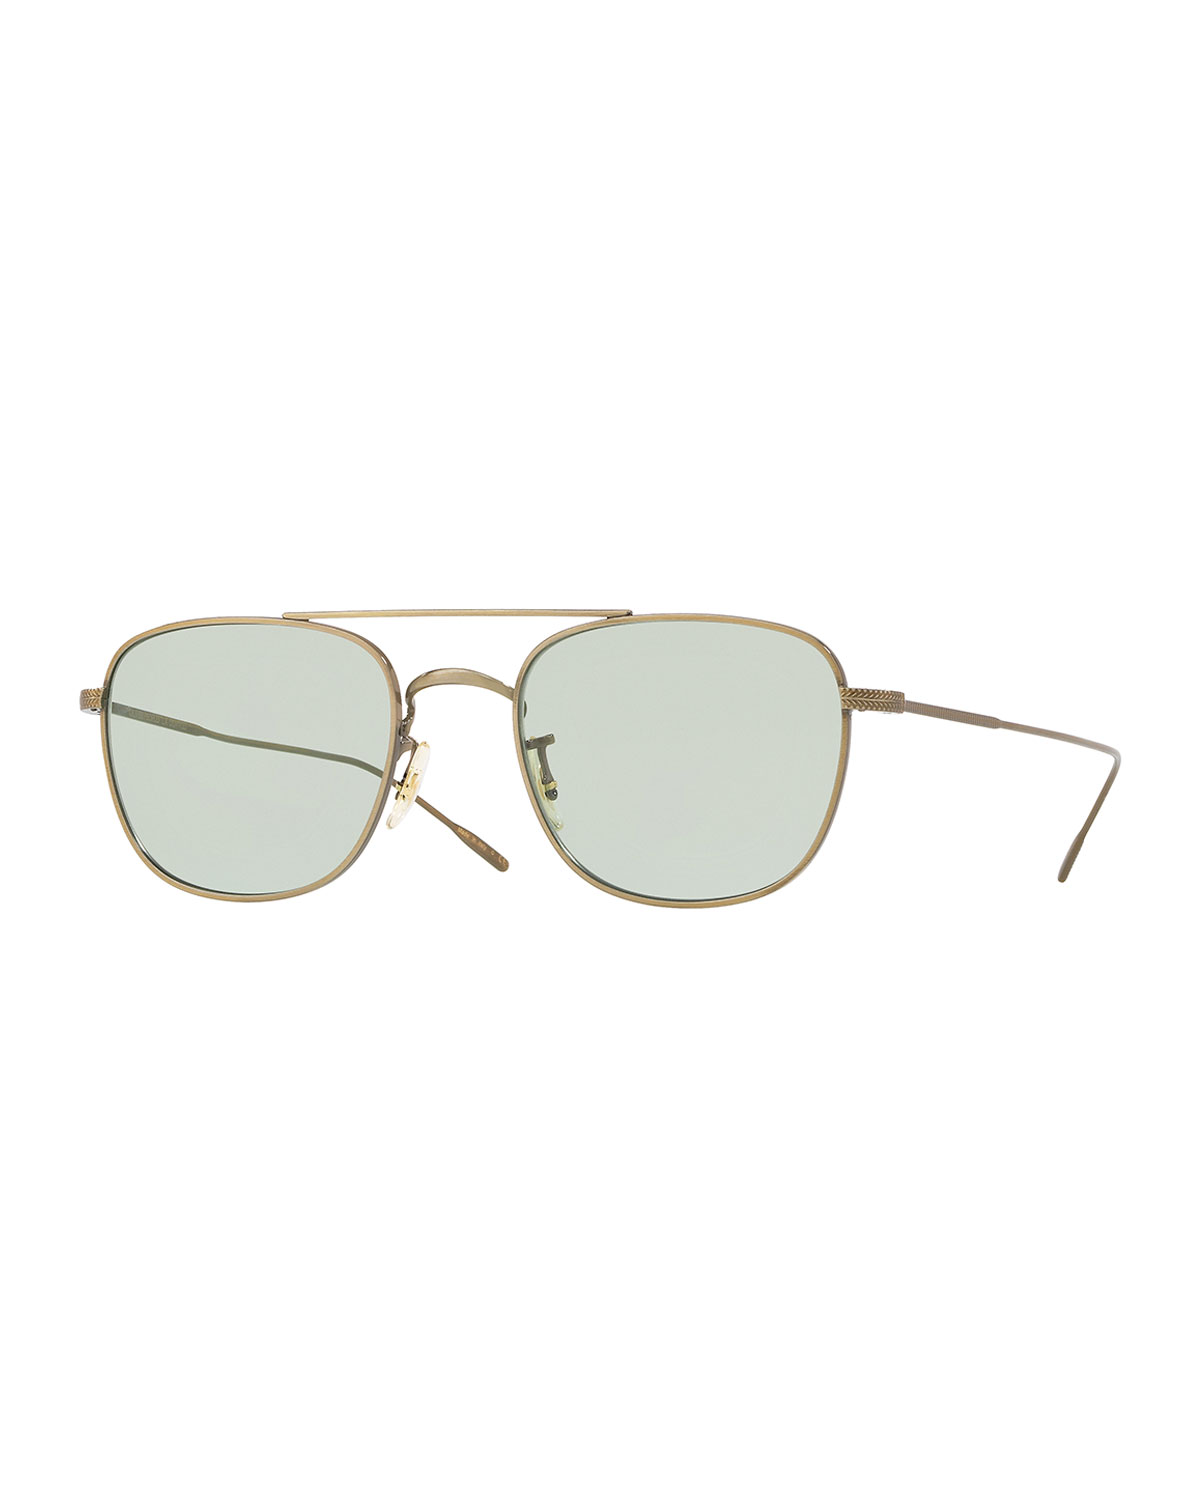 0434882008 Oliver Peoples Men s Row Kress Square Metal Sunglasses